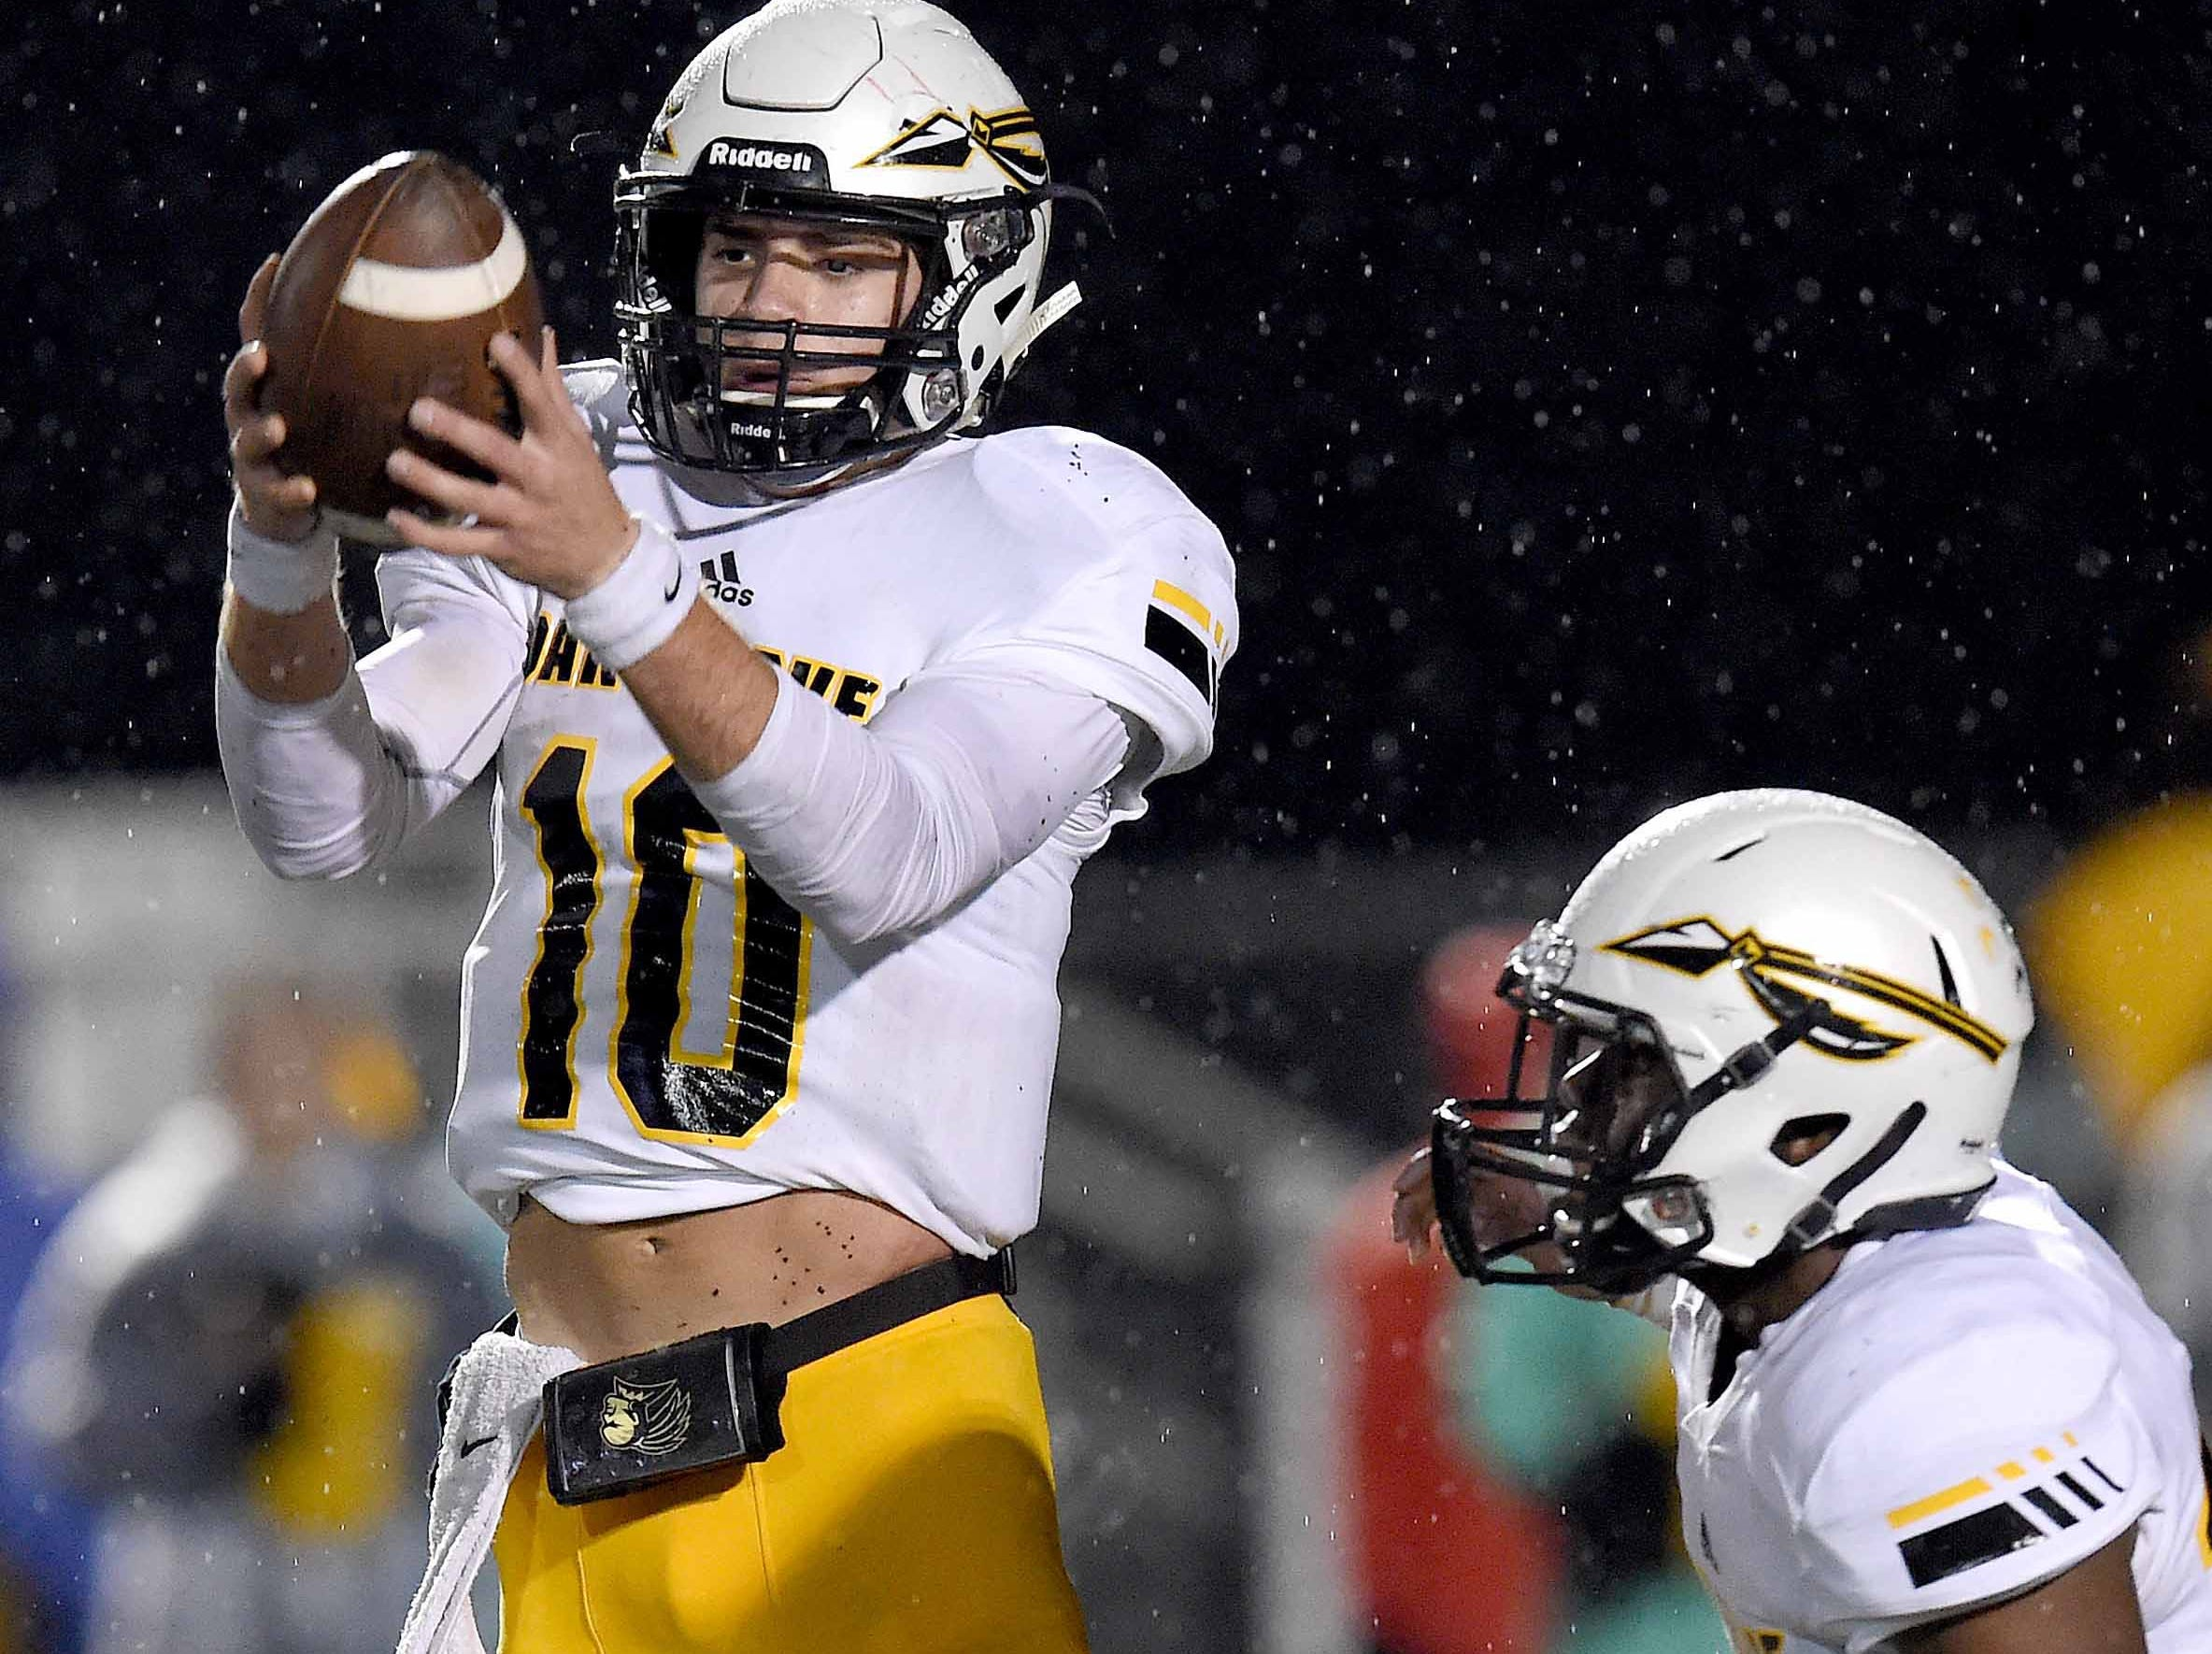 Oak Grove quarterback John Rhys Plumlee (10) catches one of the many high snaps during the first half of the MHSAA Class 6A South State Championship on Friday, November 23, 2018, at Brandon High School in Brandon, Miss.